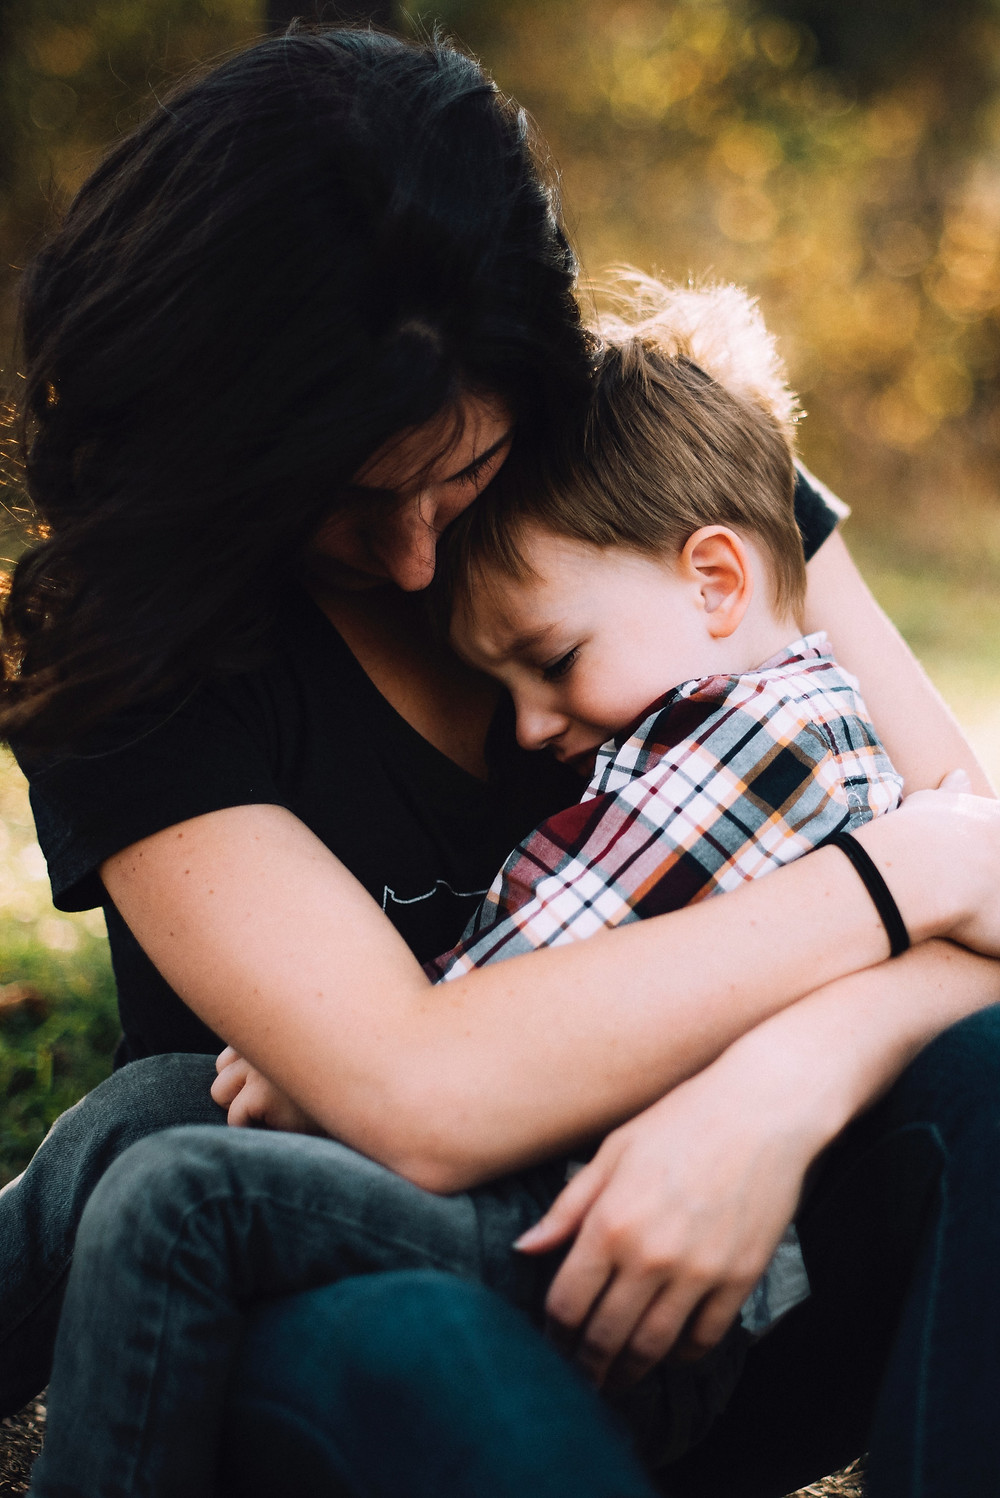 Mother embraces son in a moment of distress